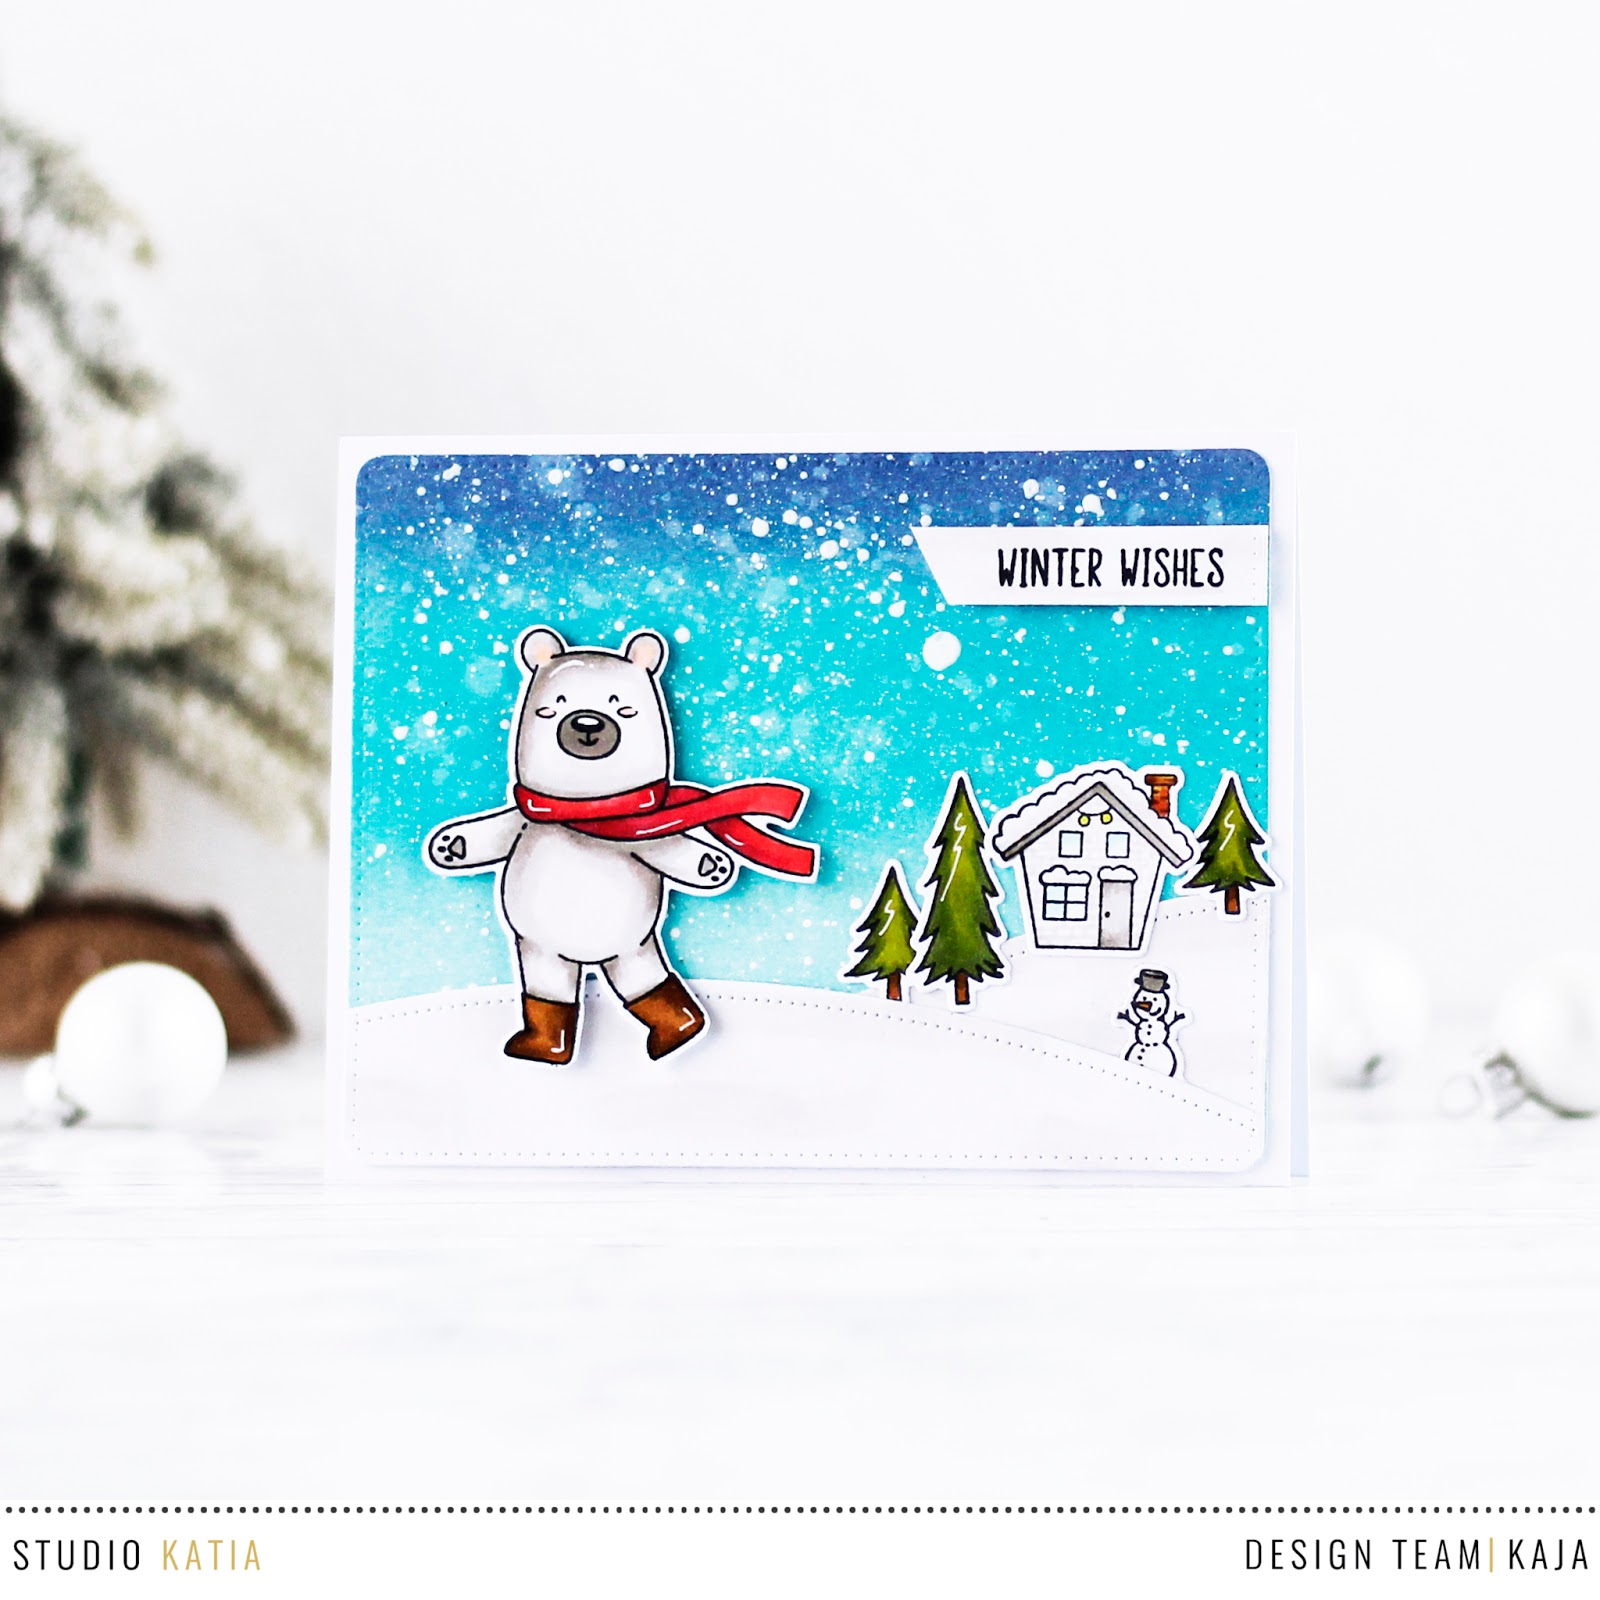 Winter wishes | STUDIO KATIA